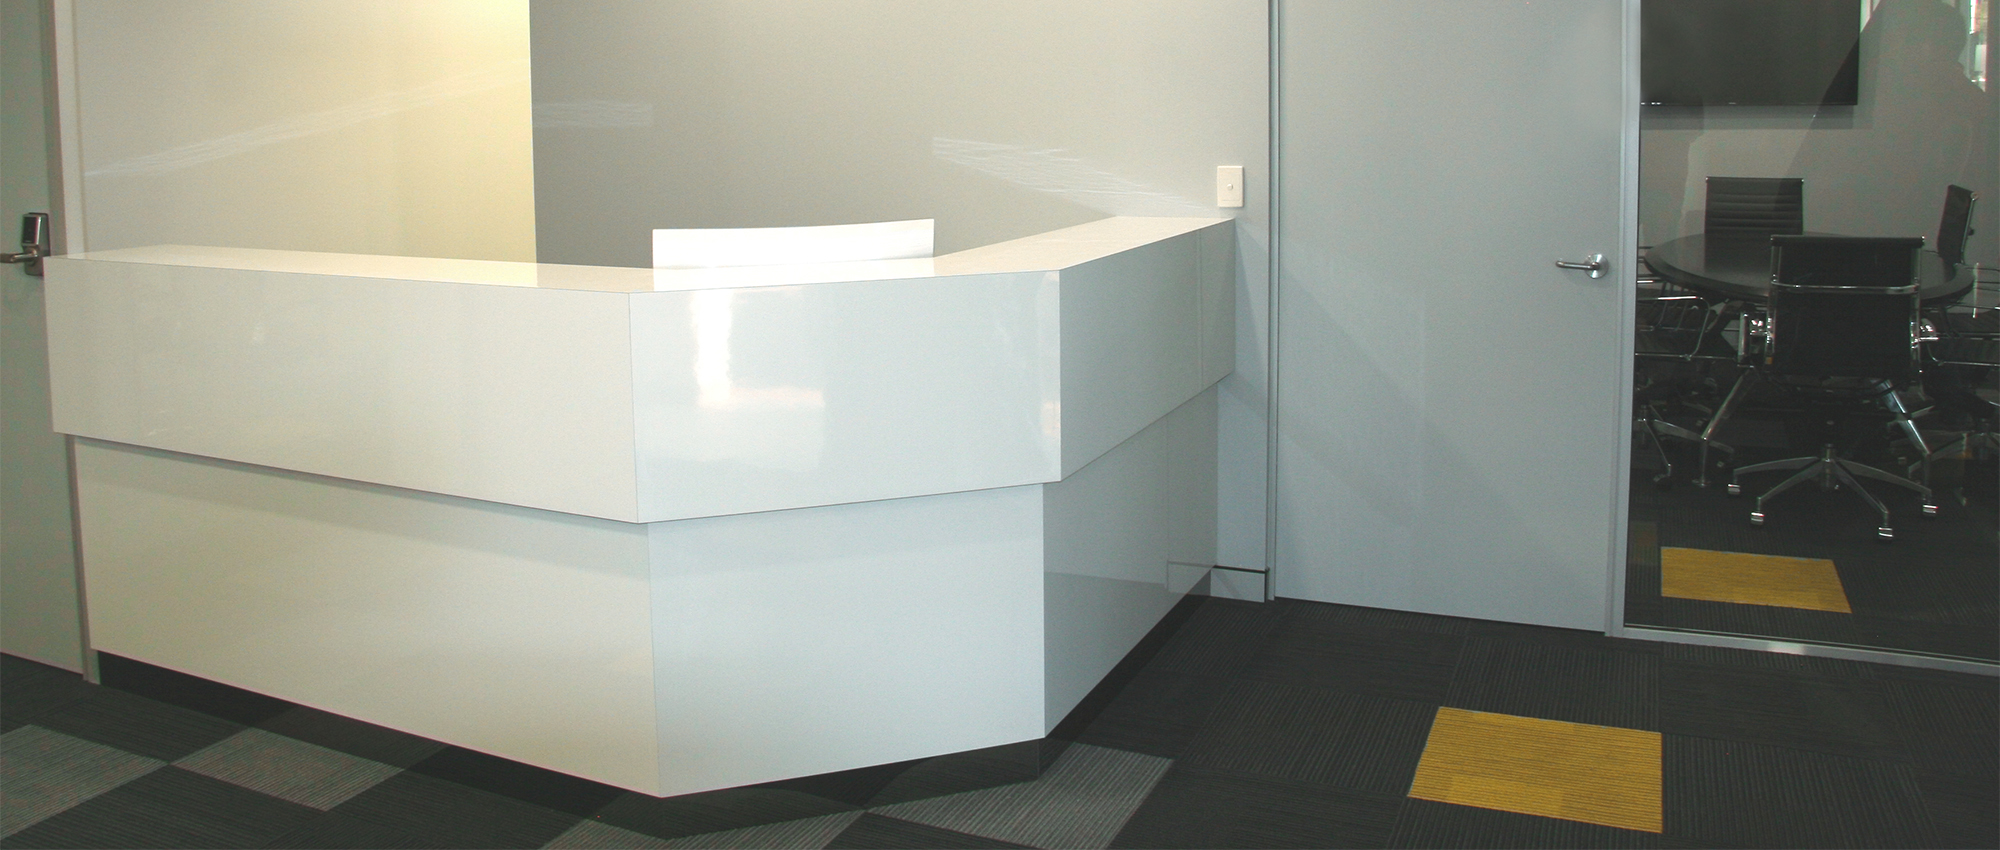 Office Plus Perth Reception Counter Office Furniture Office Office desk Reception Backlight